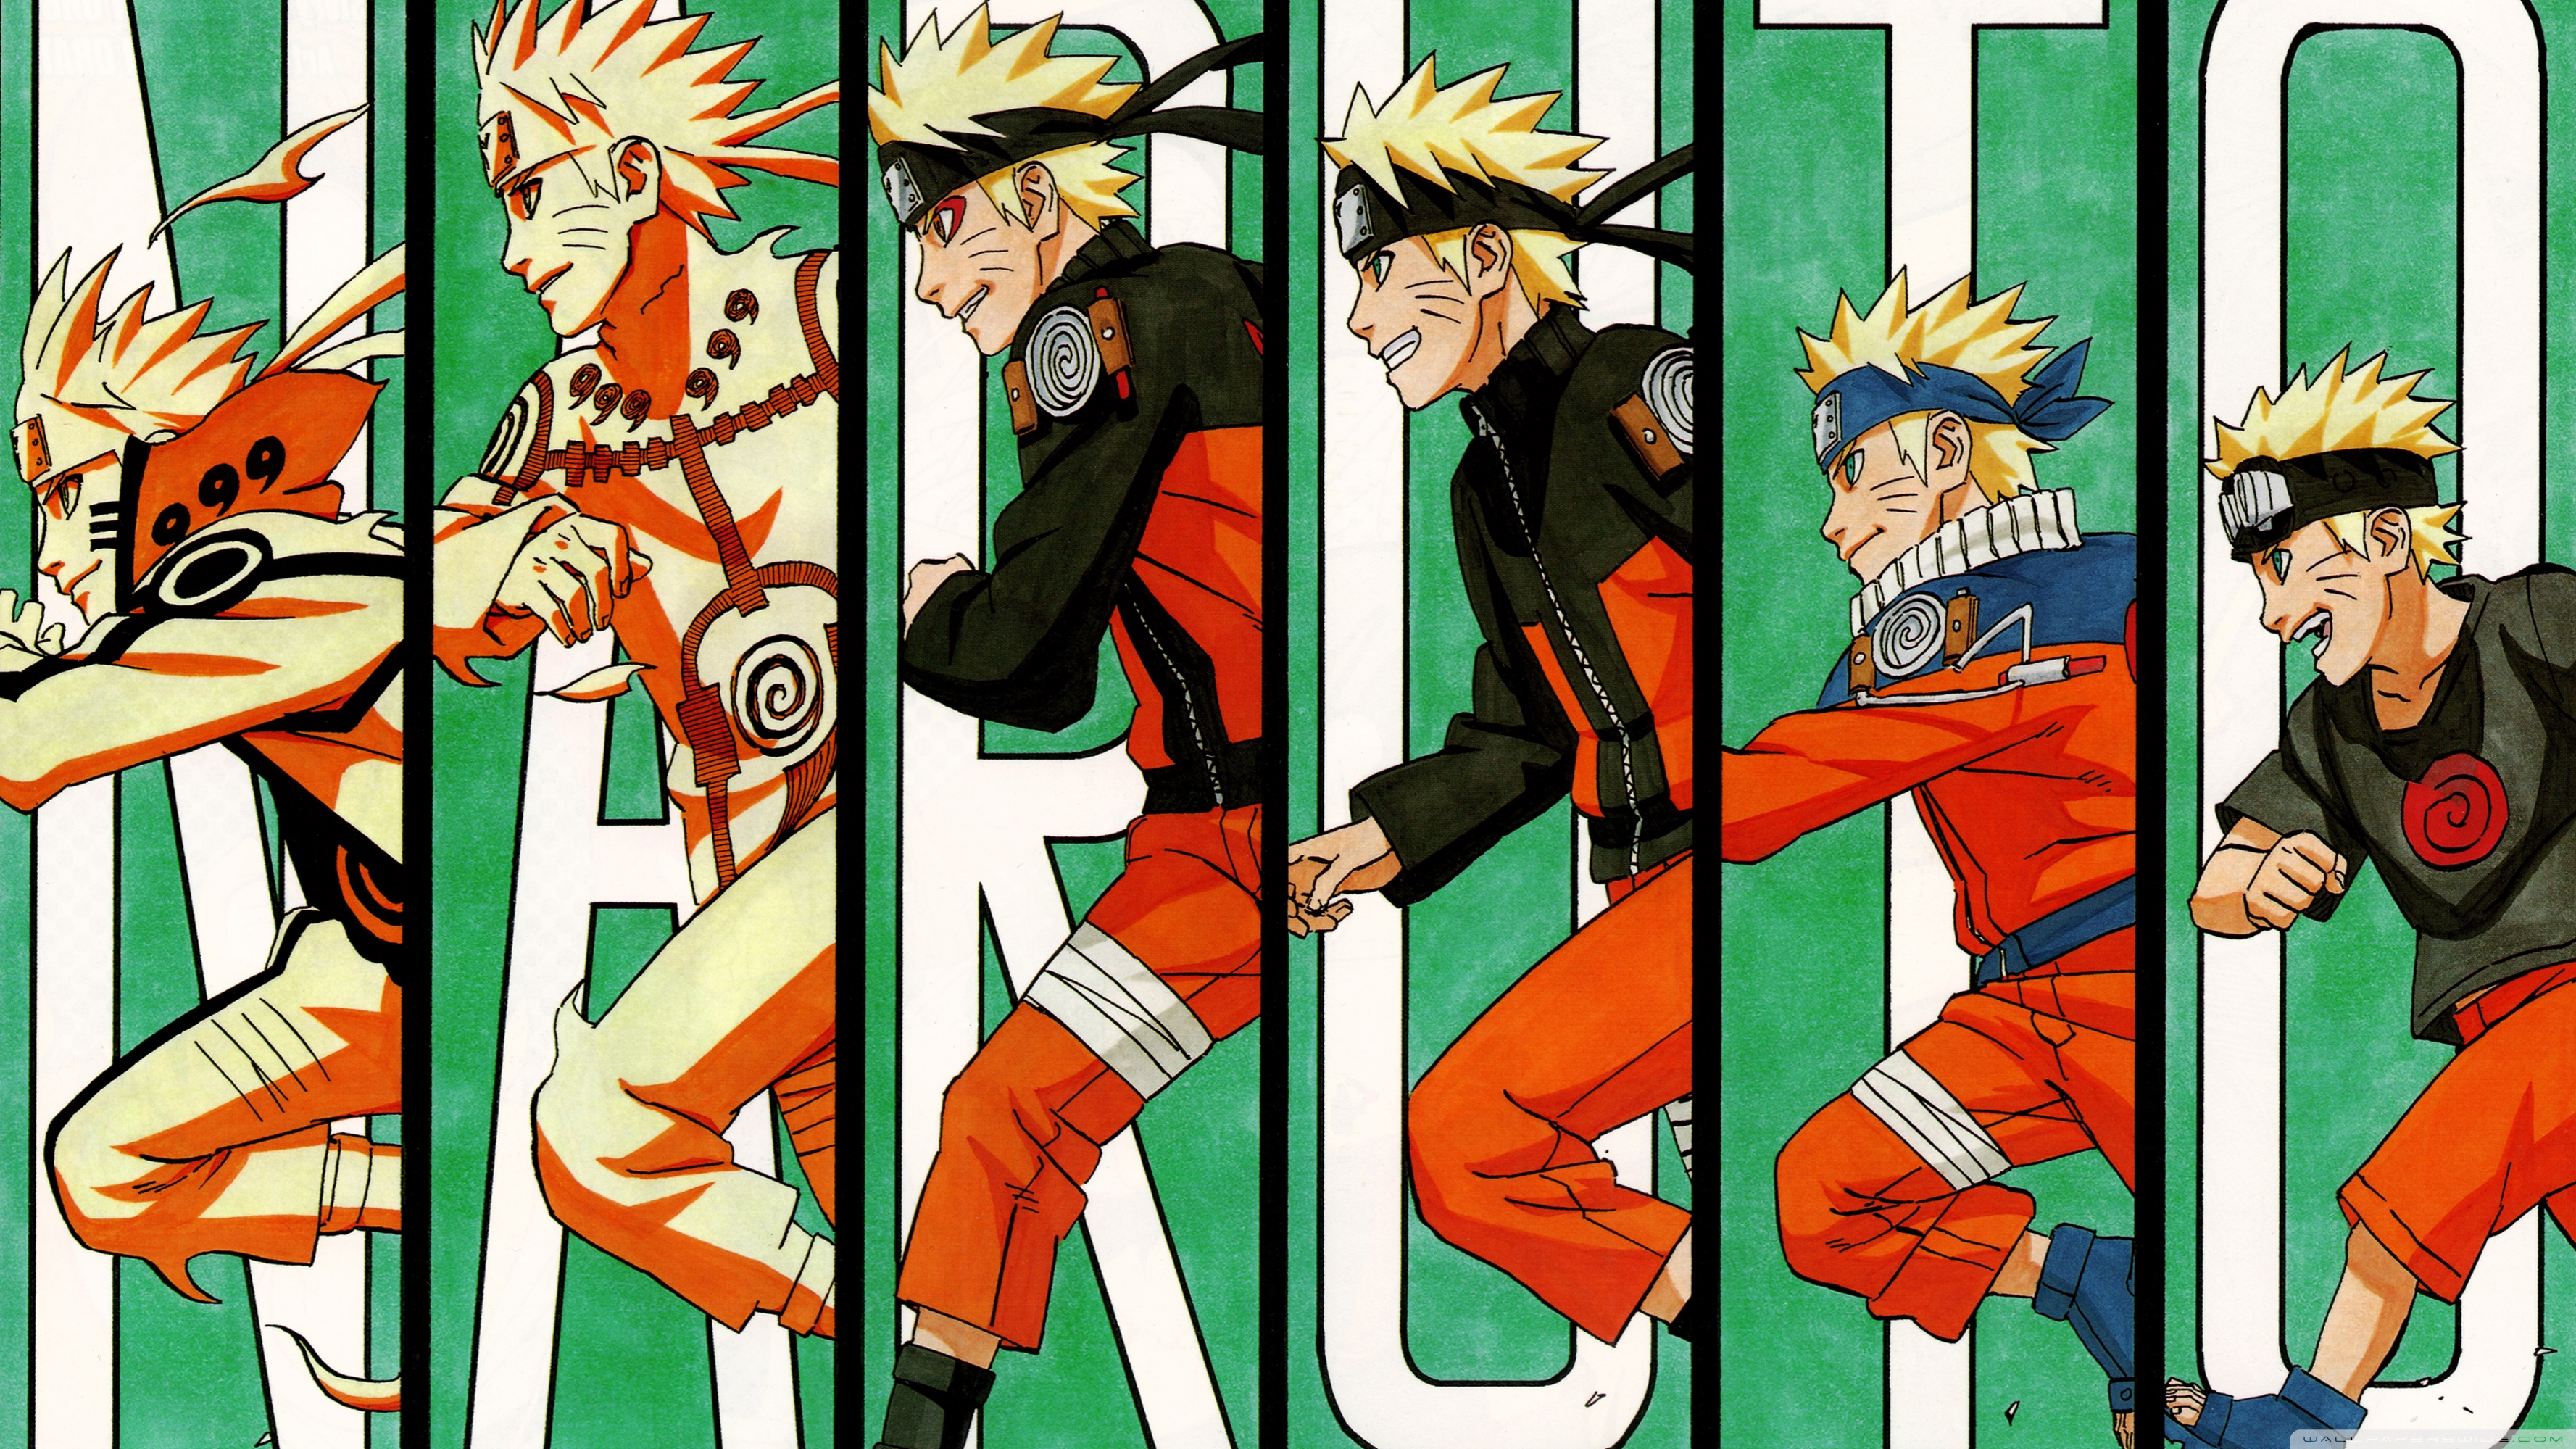 Evolution of naruto